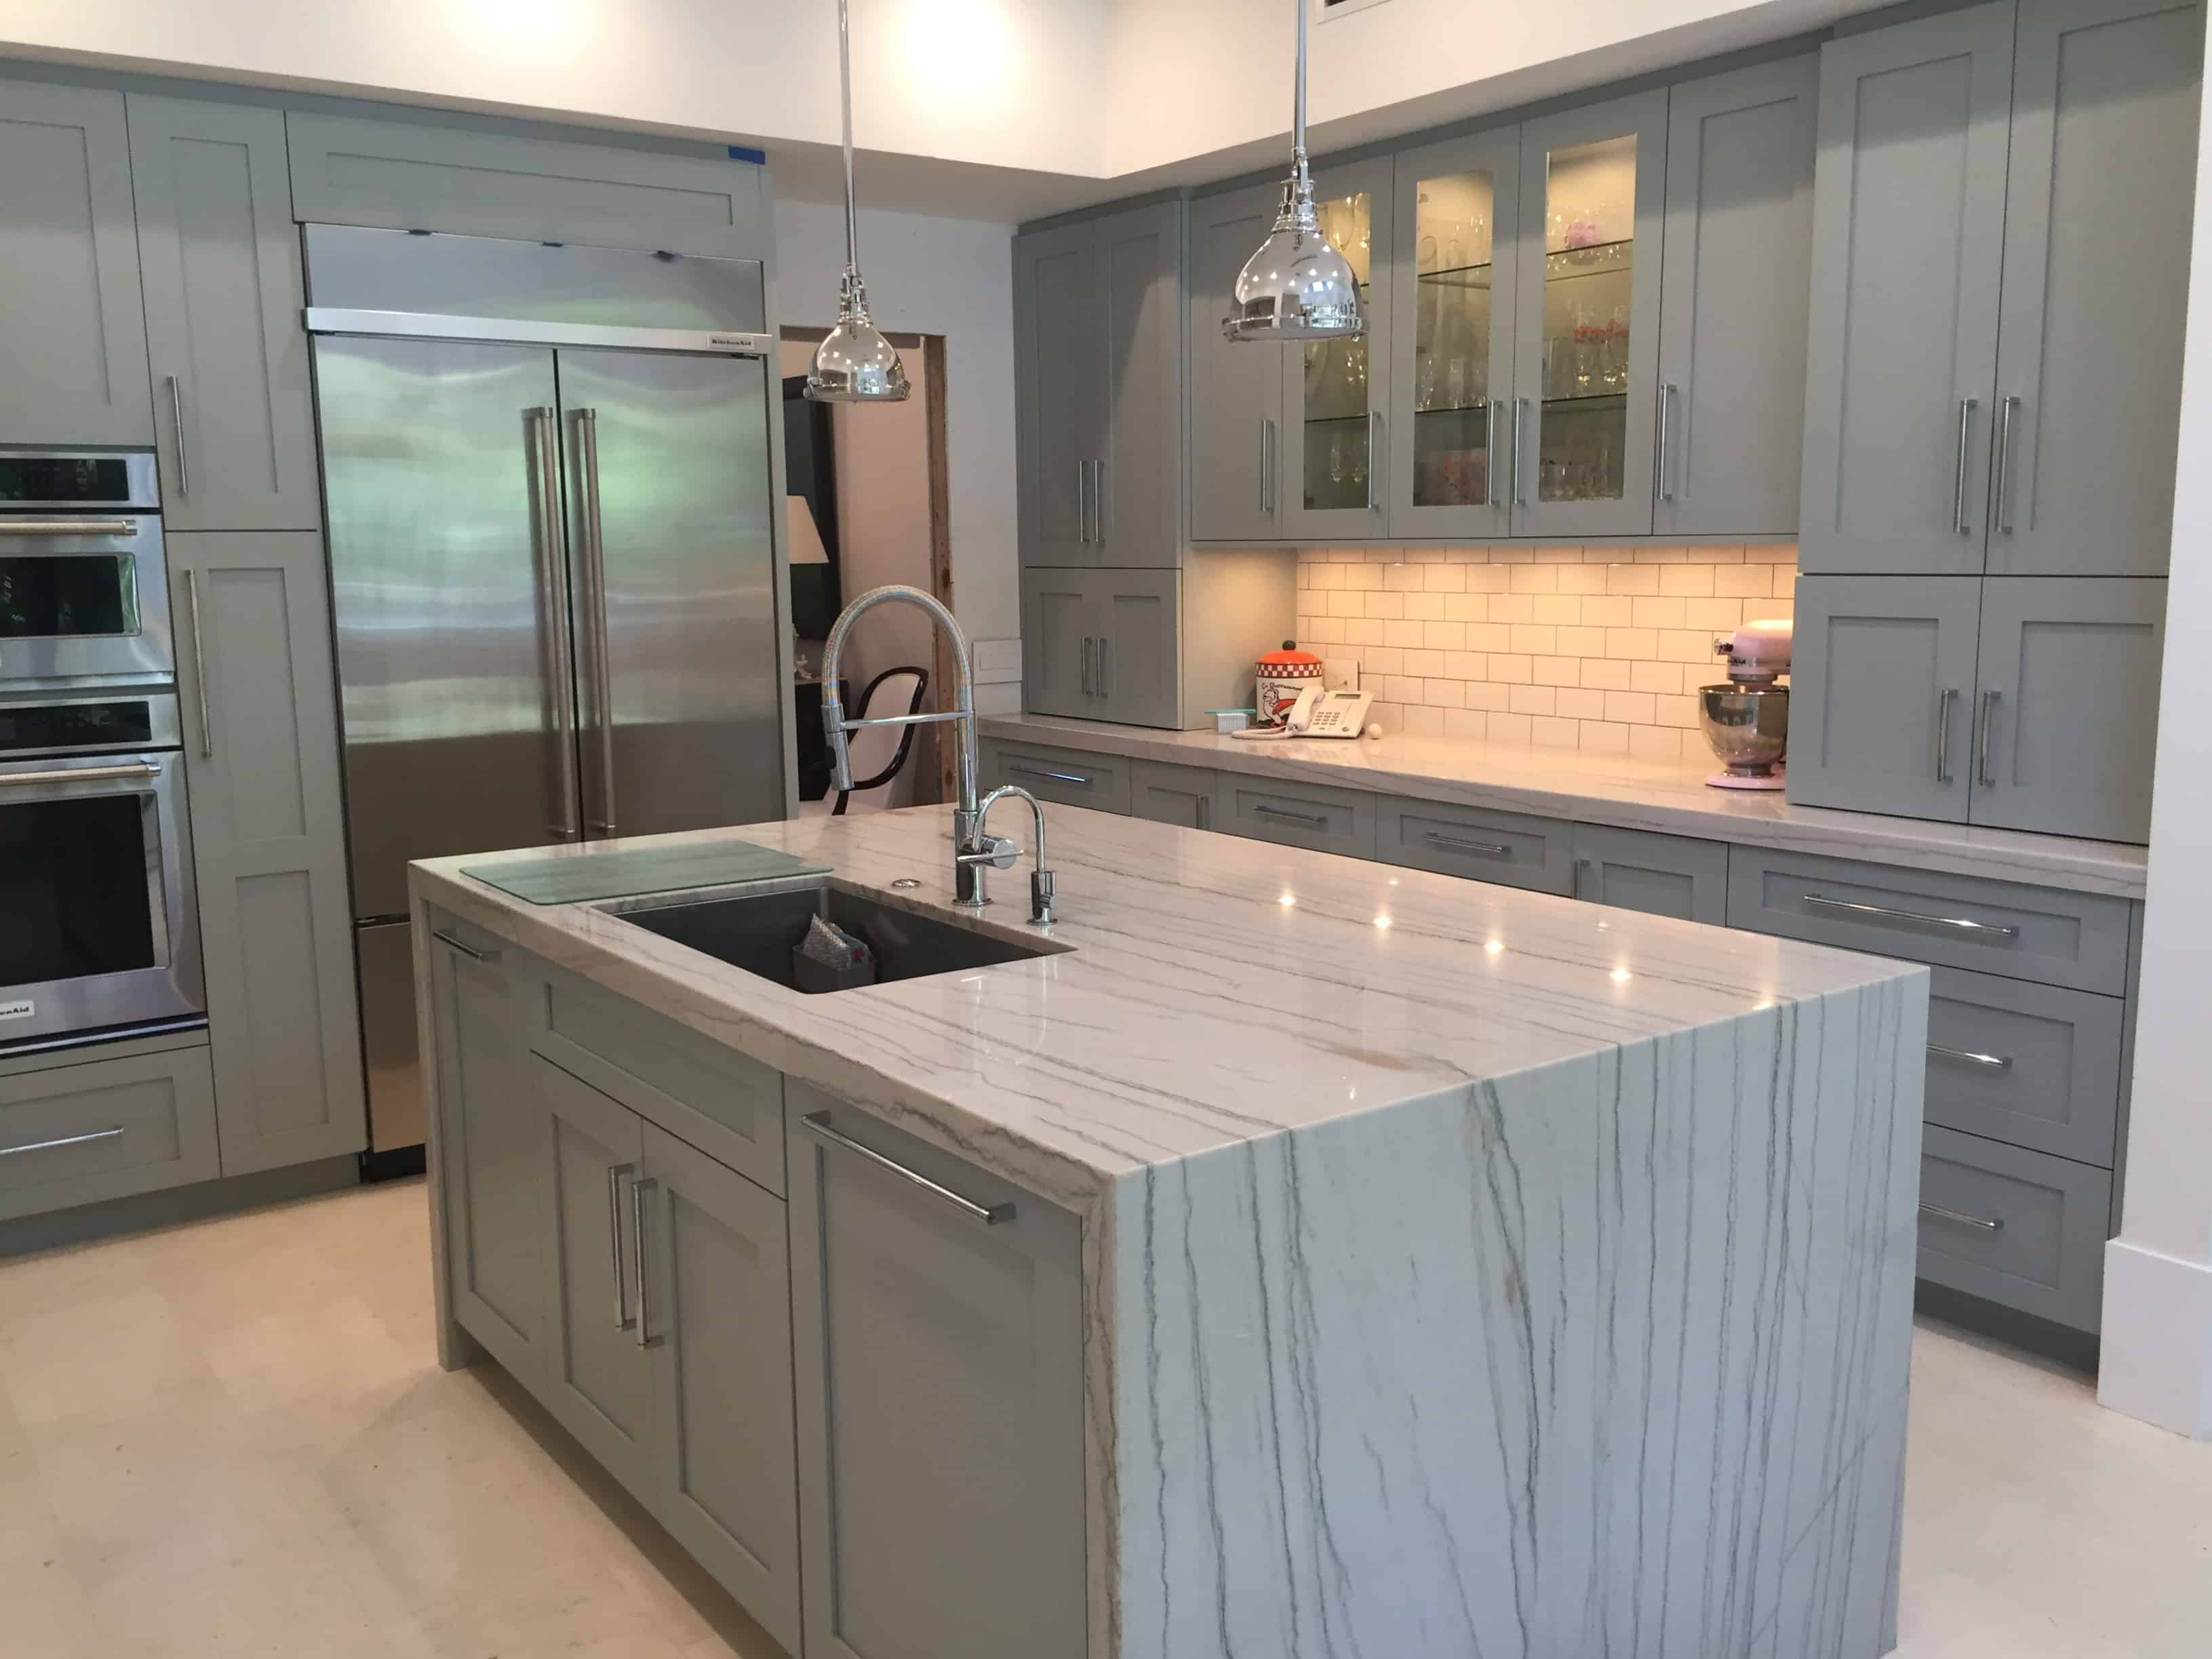 Quartzite just like comes in numerous different colors. However, the lighter the shade of quartzite the more you are capable of seeing the intricate design of the stone.